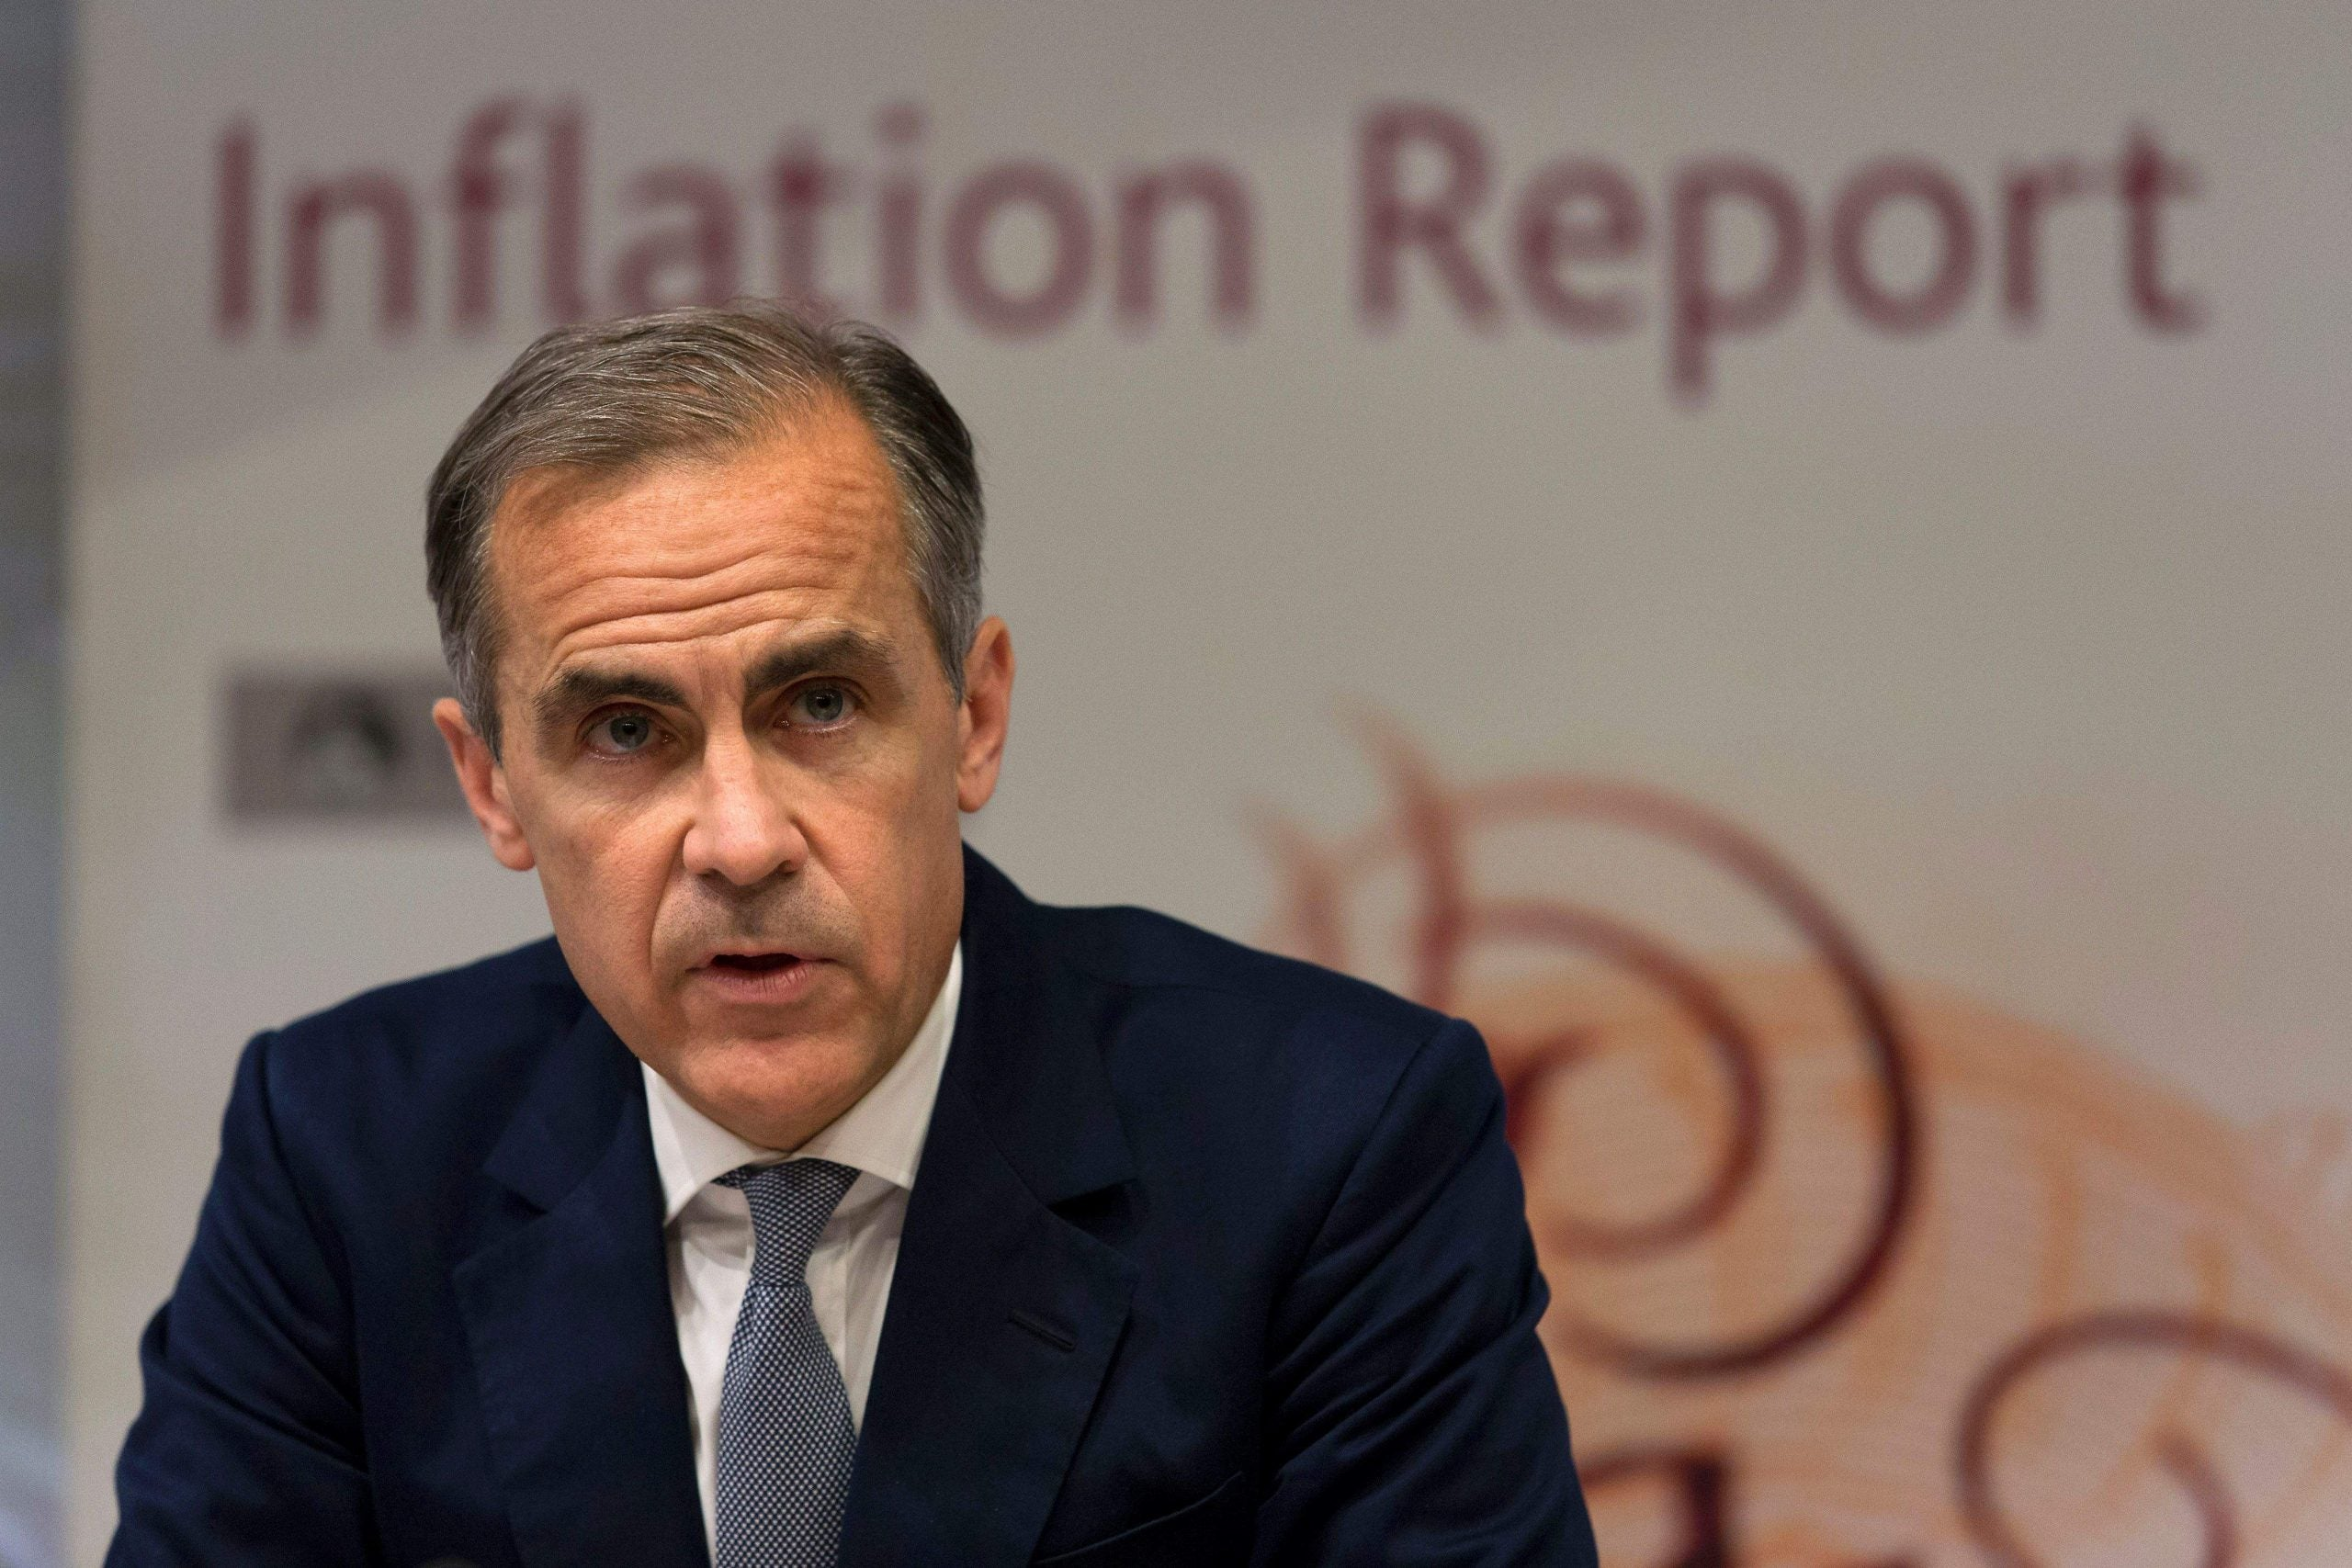 Mark Carney to stay at Bank of England until June 2019